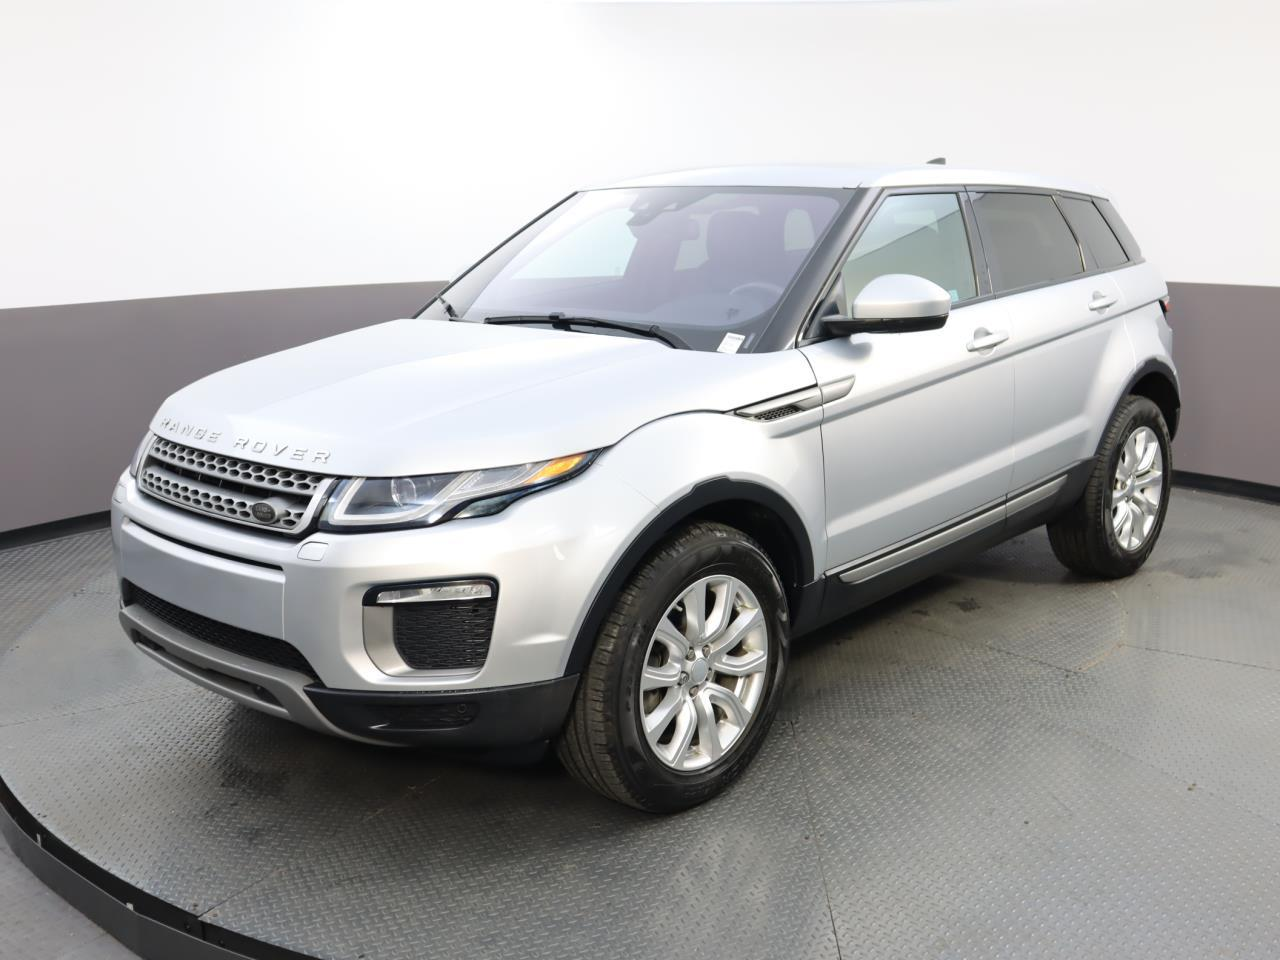 Used LAND-ROVER RANGE-ROVER-EVOQUE 2017 MARGATE SE